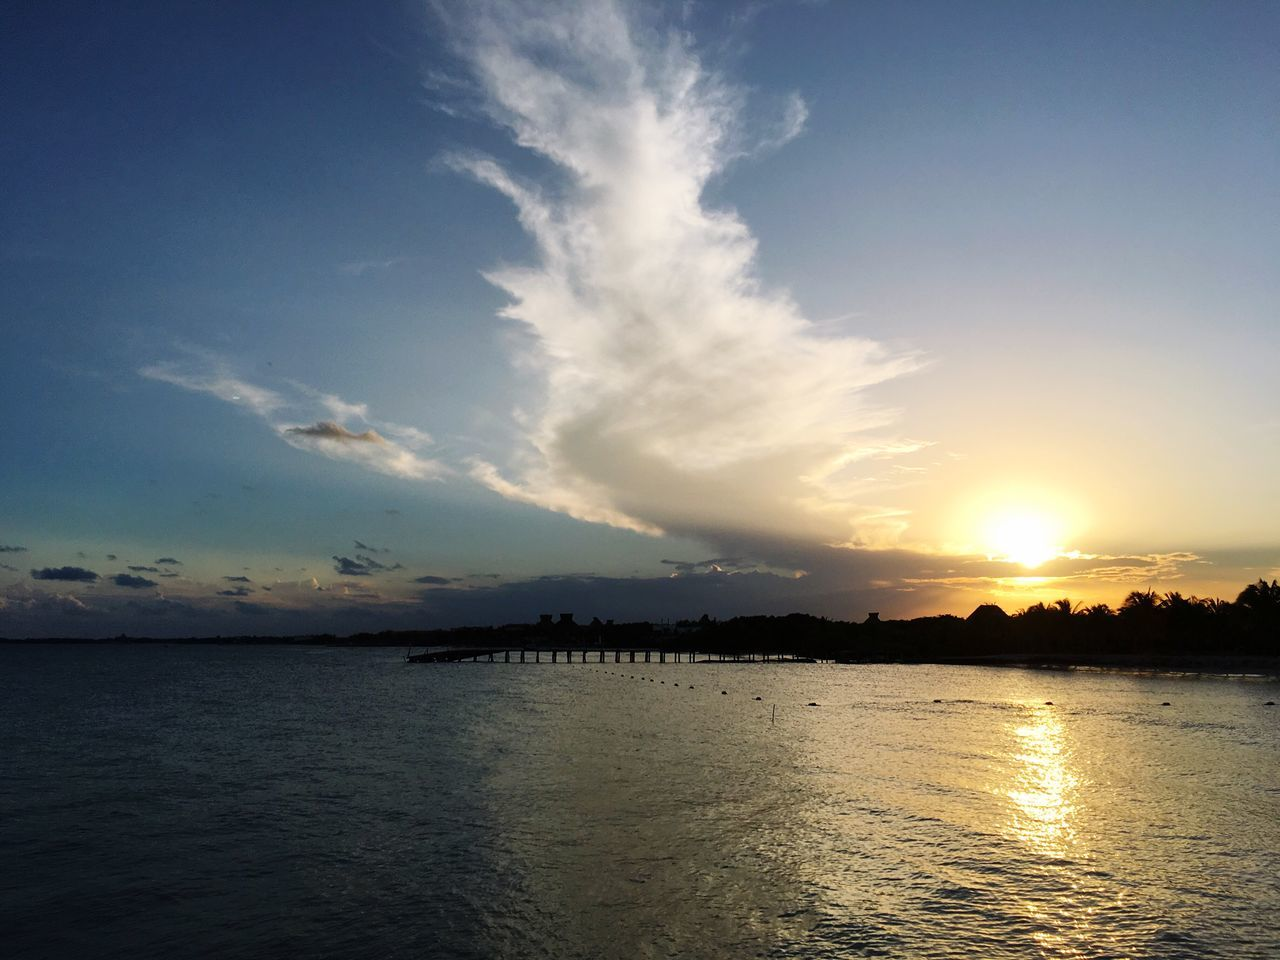 sunset, sky, water, scenics, tranquility, beauty in nature, silhouette, nature, tranquil scene, sea, cloud - sky, waterfront, reflection, no people, outdoors, sun, rippled